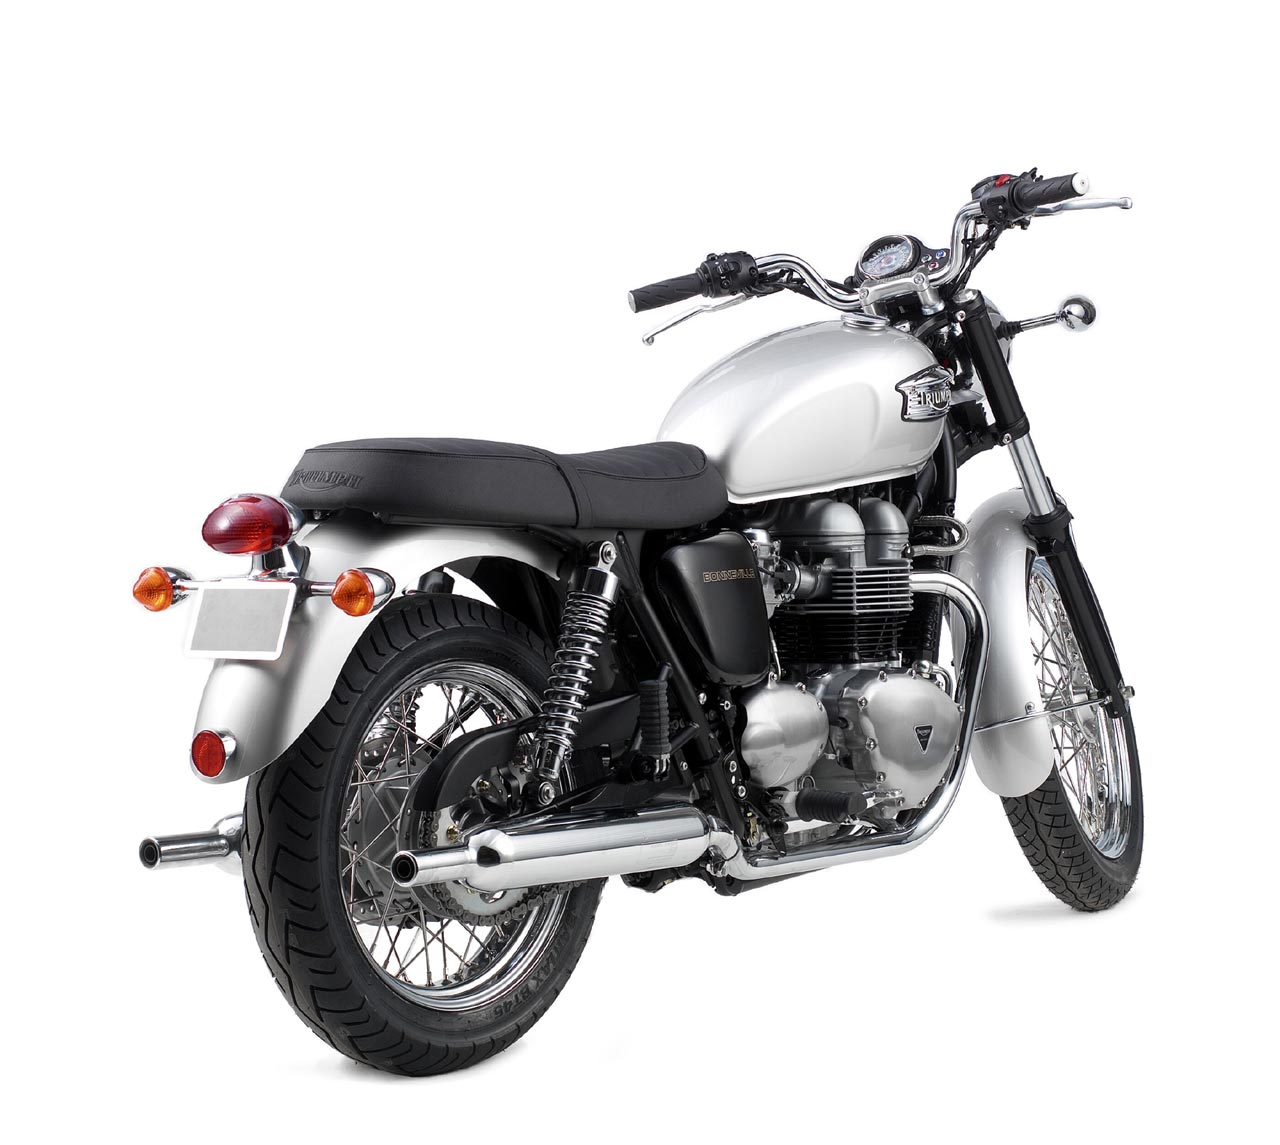 2006 Triumph Bonneville | Top Speed